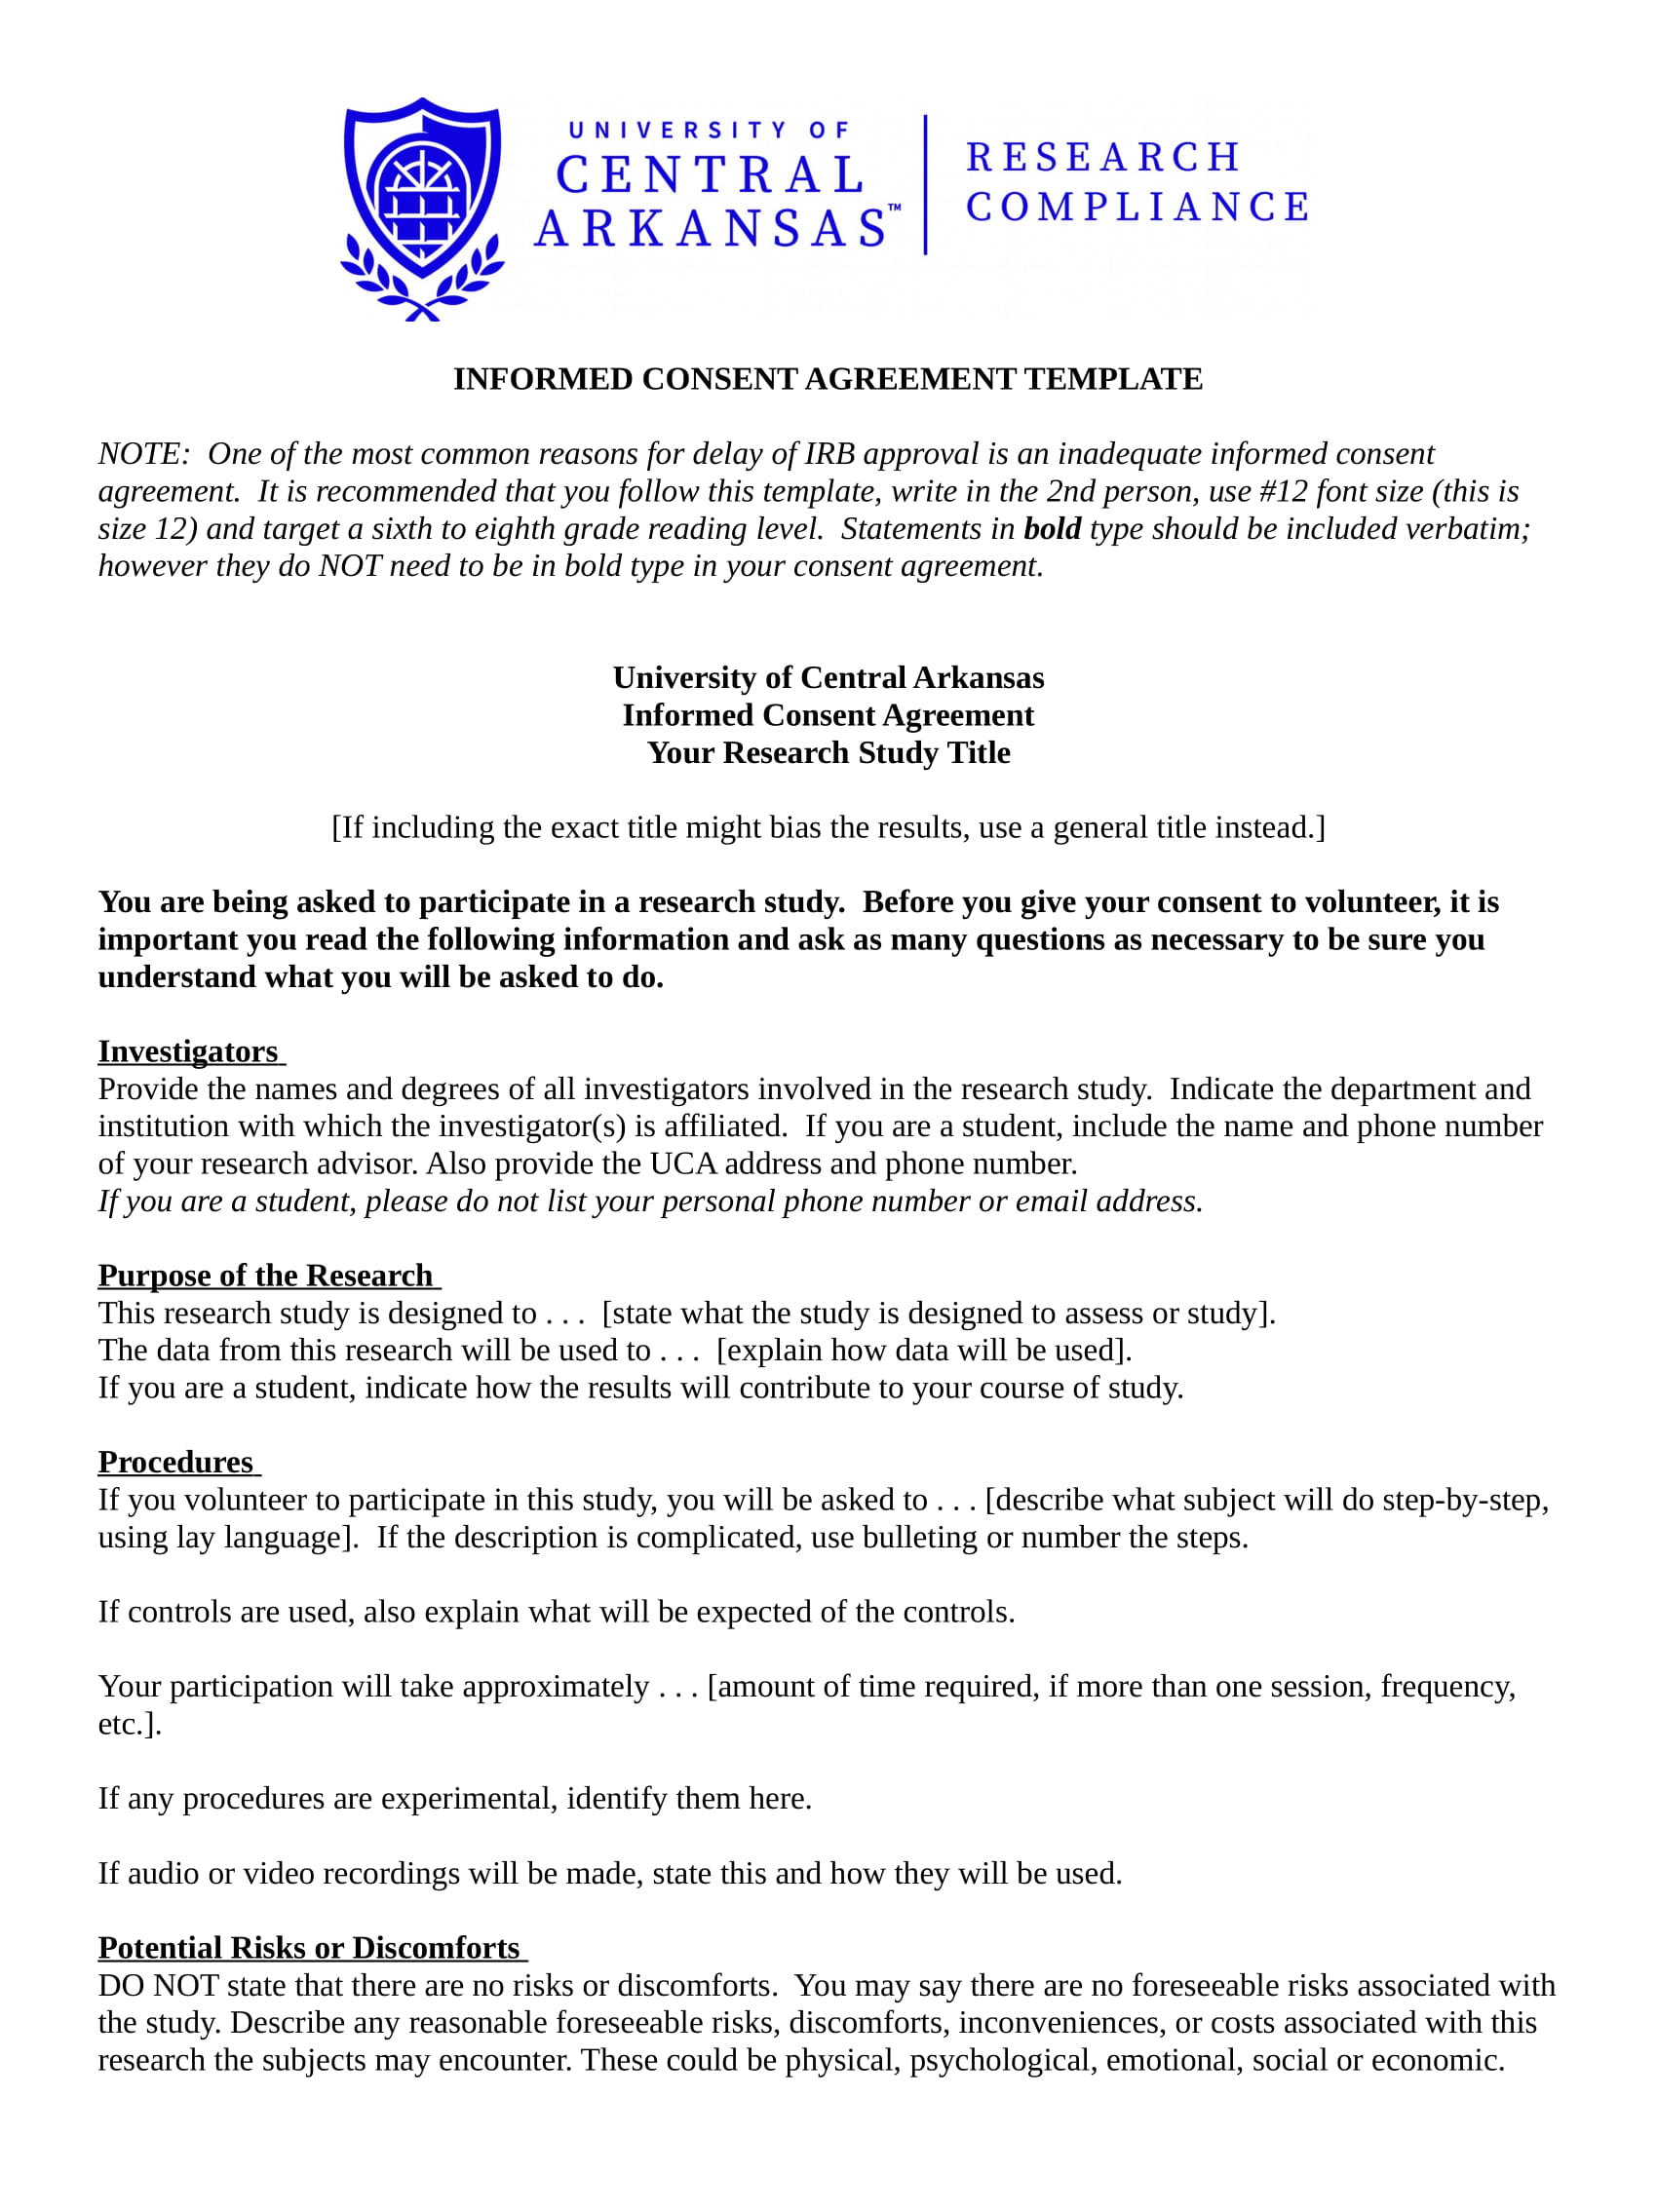 informed consent agreement contract form in doc 1